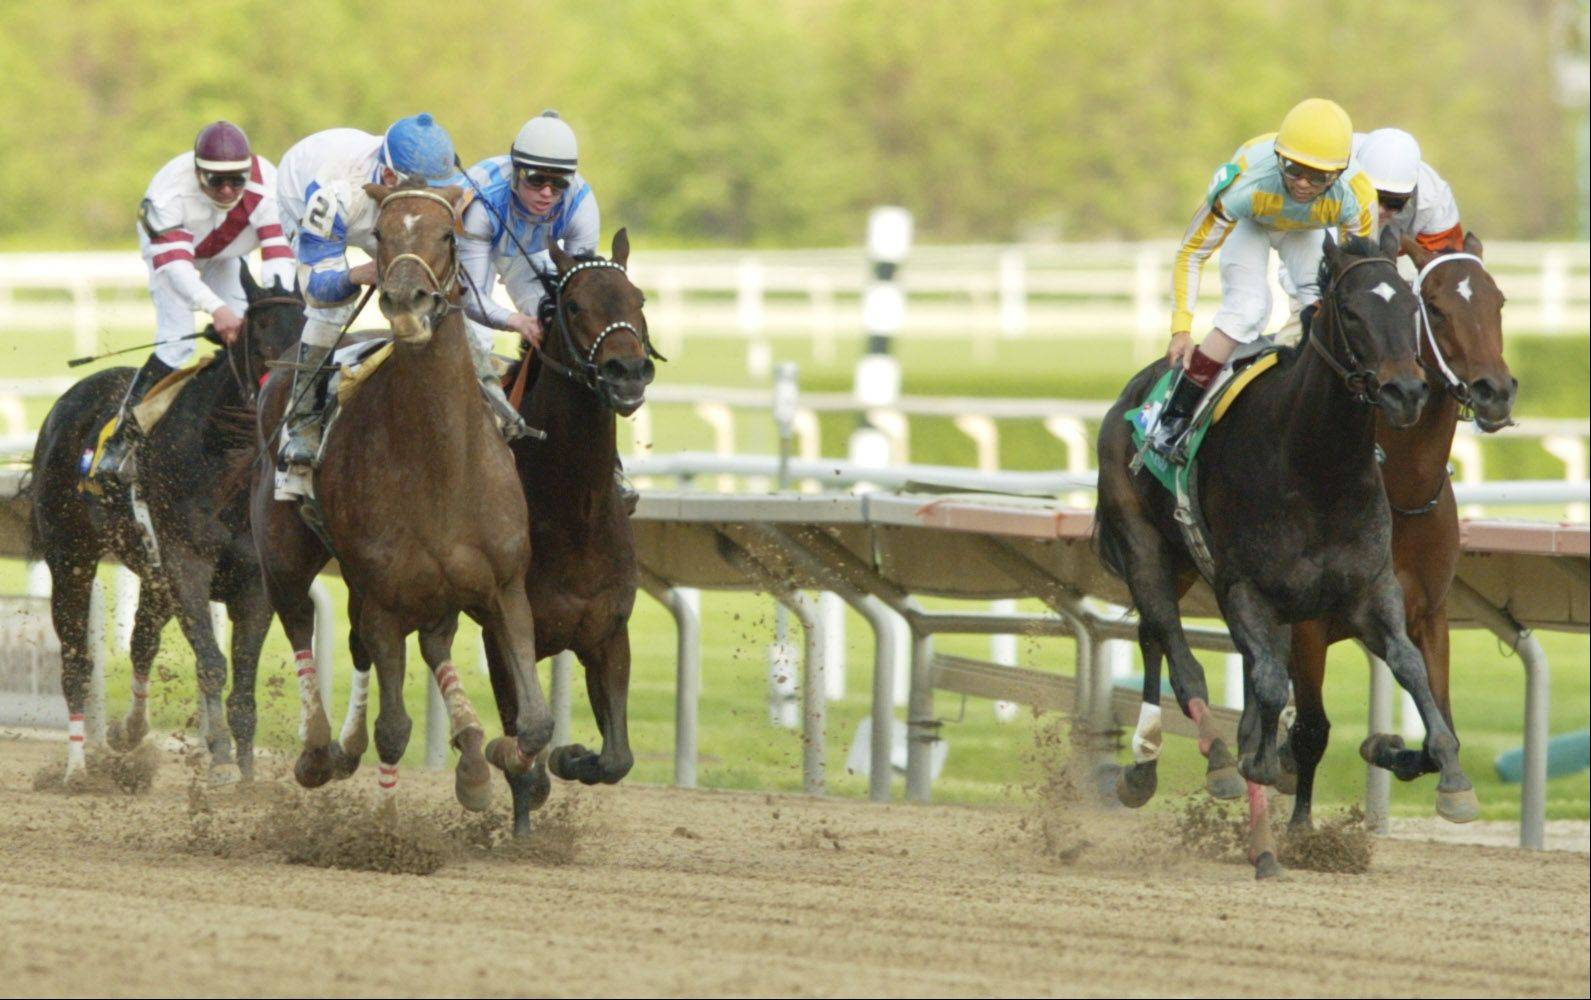 Watching horses race is only part of the fun at the Arlington Park Racetrack, which hosts a variety of other activities for families.